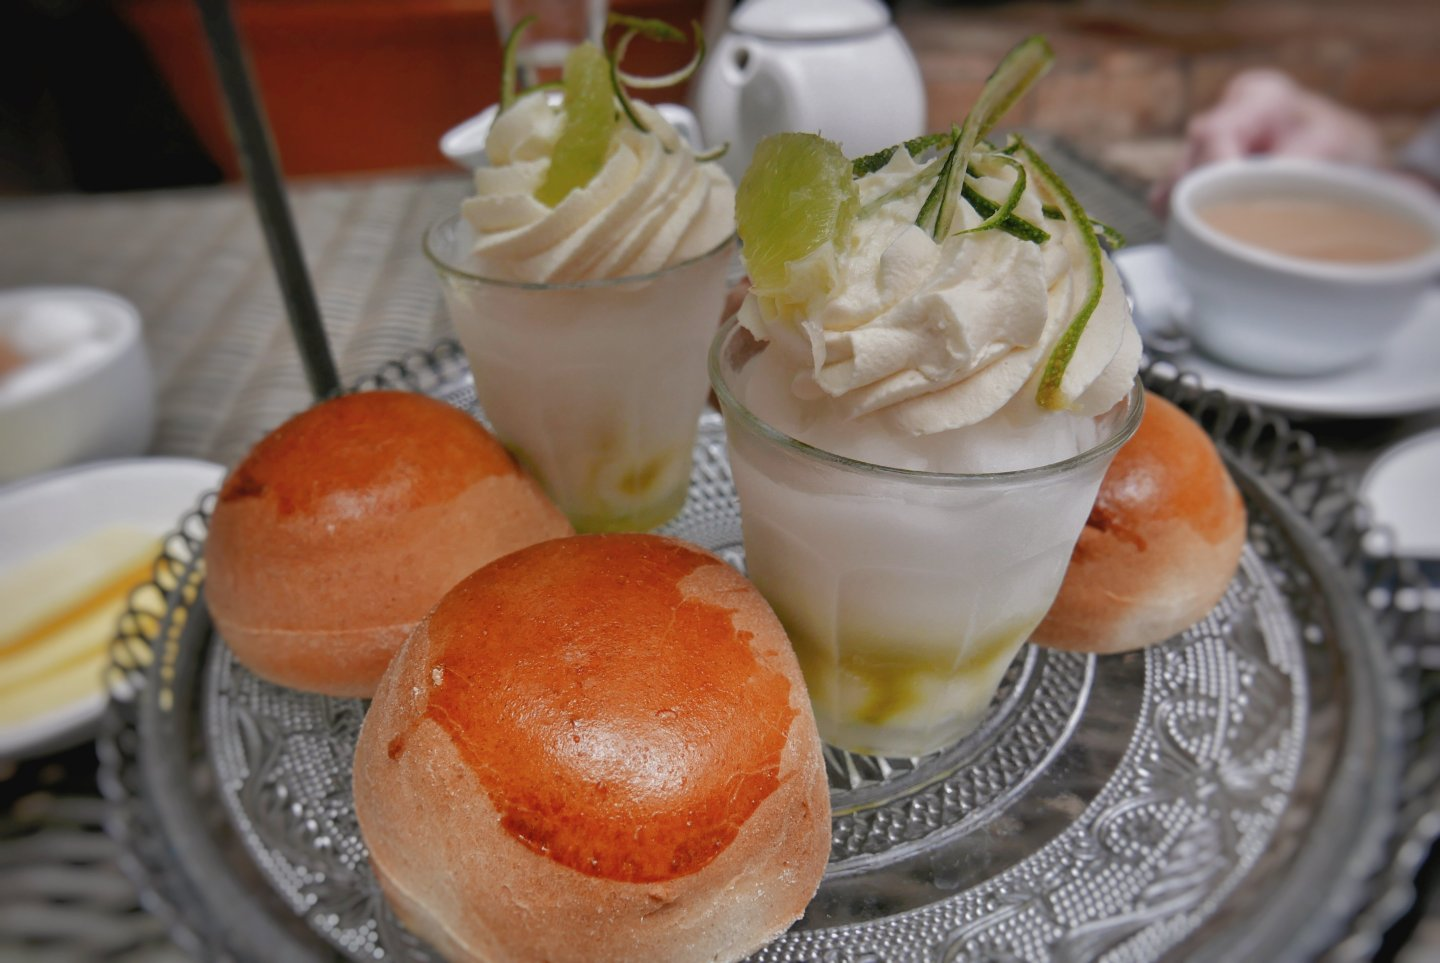 Hotel Du Vin Afternoon Tea: Scones and gin & tonic sundae